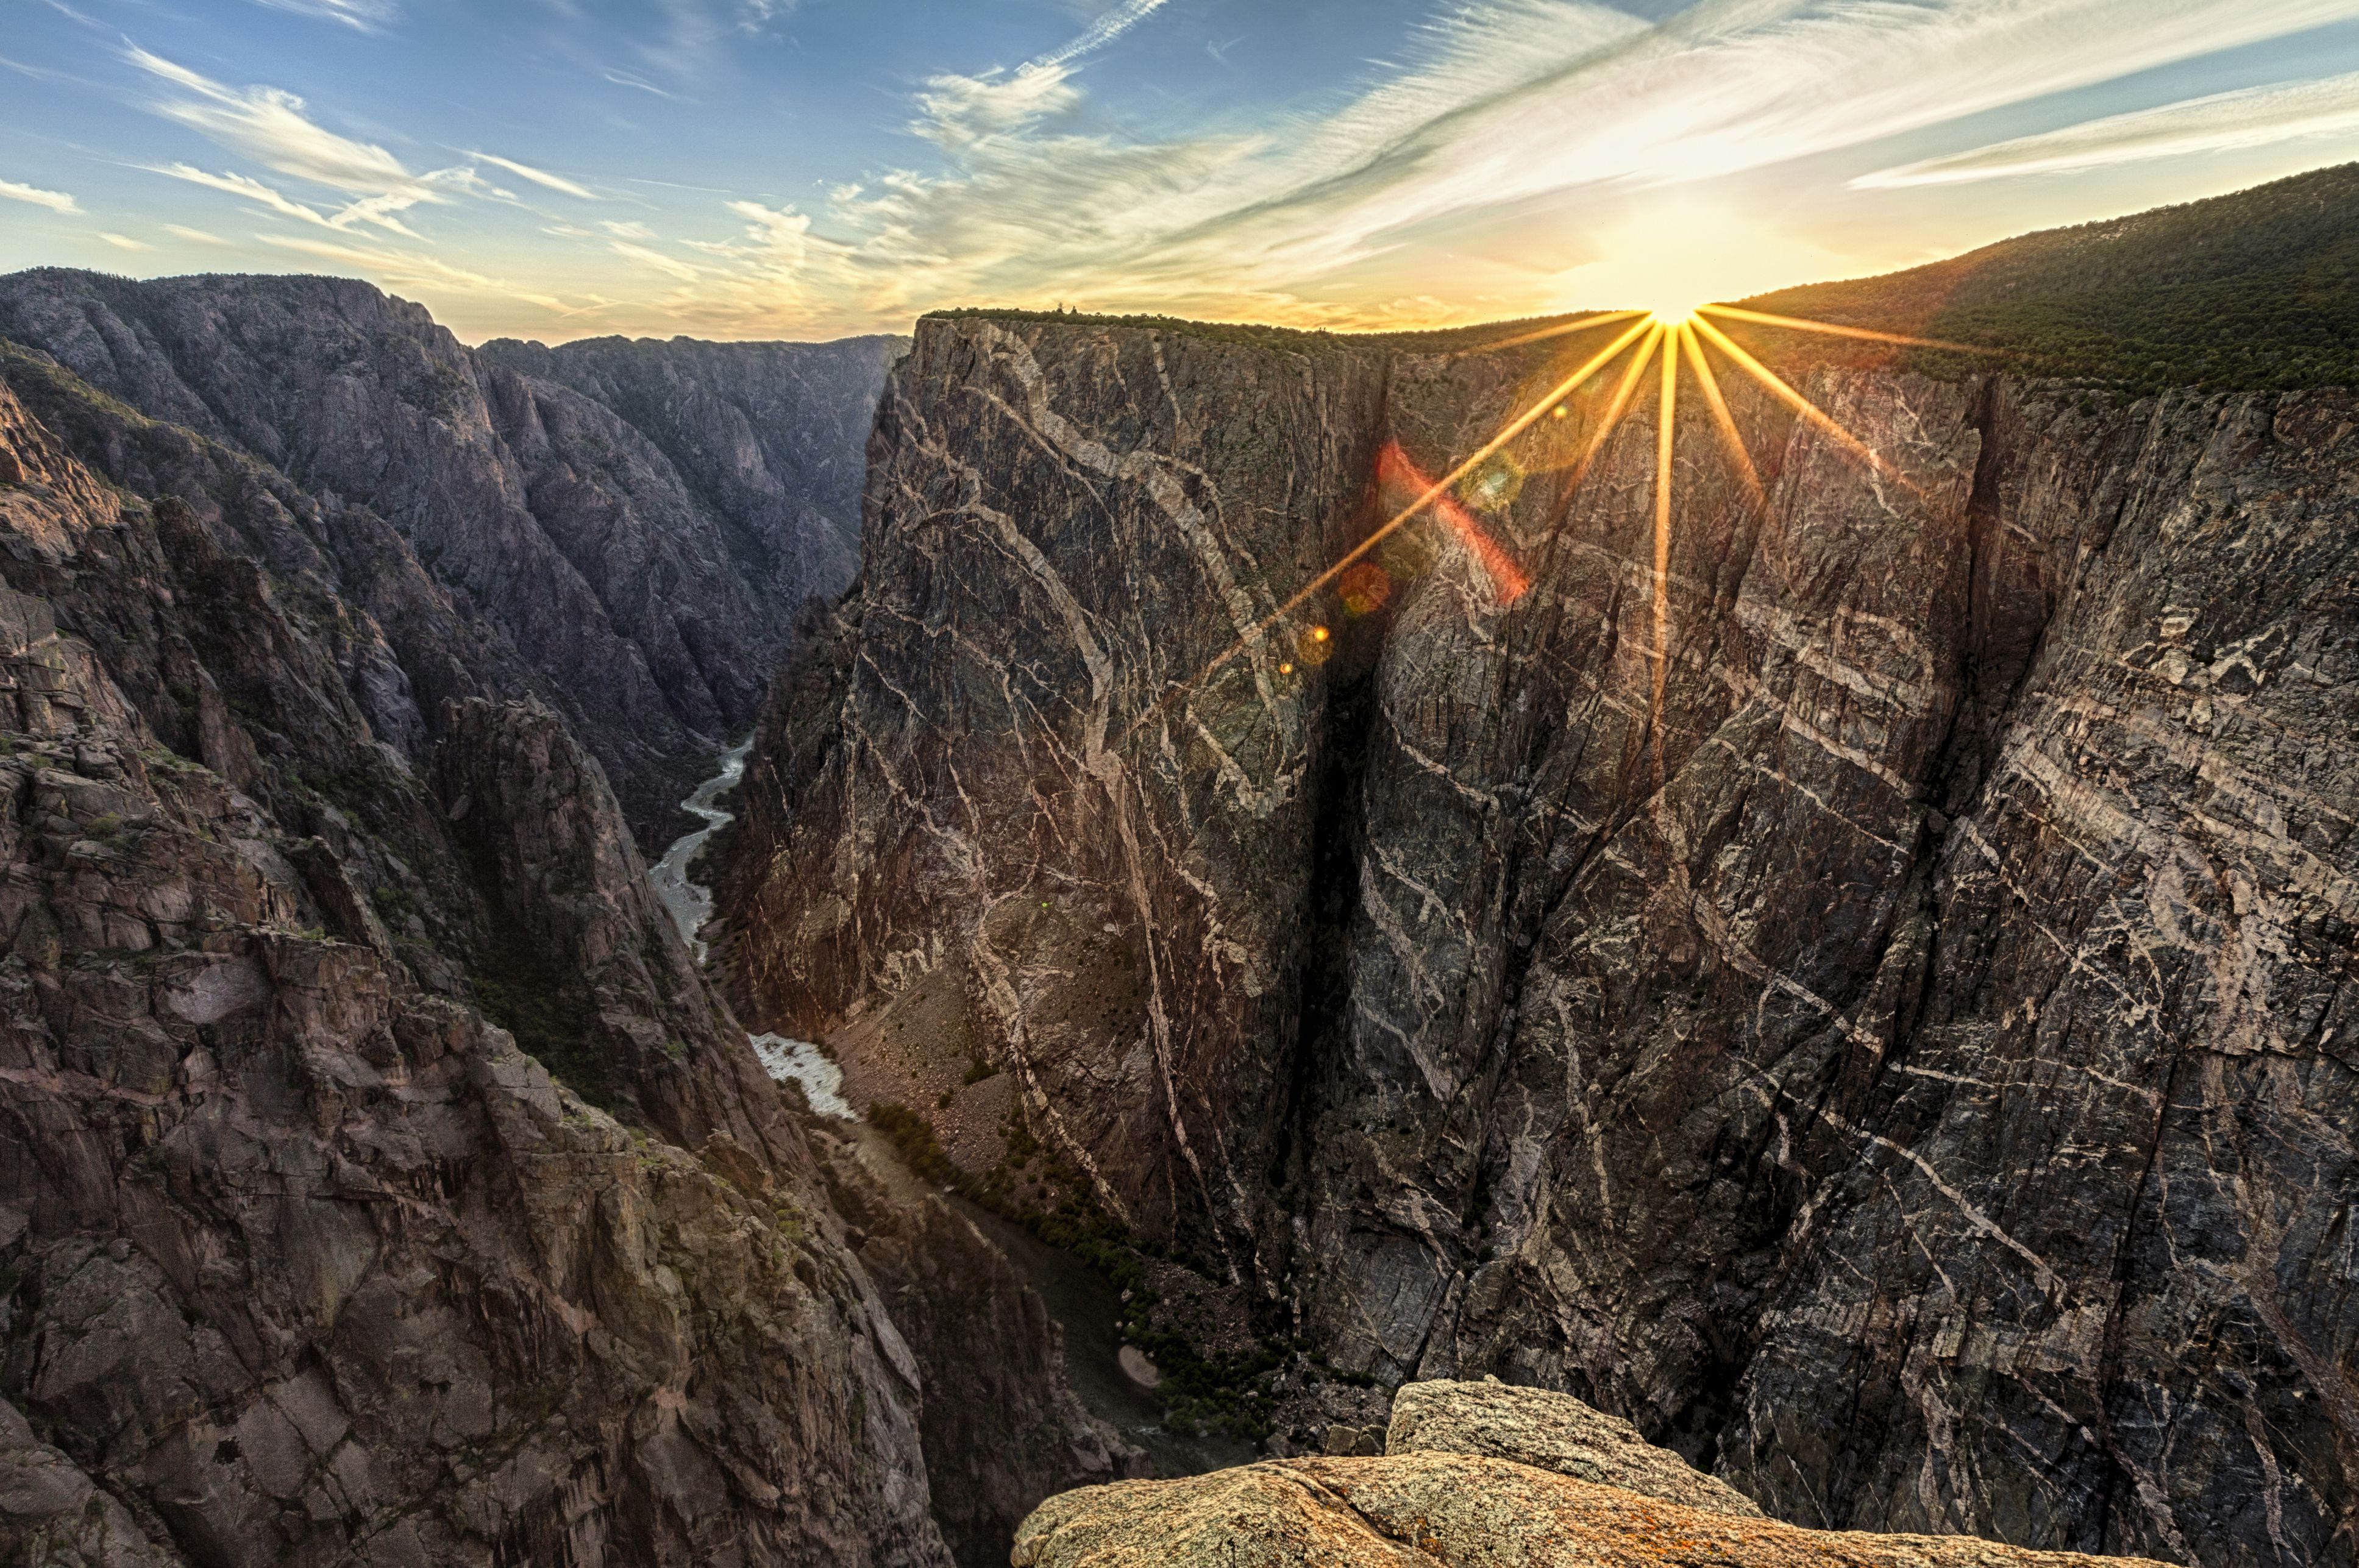 Black Canyon of the Gunnison is a National Park in Colorado, known for pink pegmatite. Pegmatite forms pale bands in the cliffs.